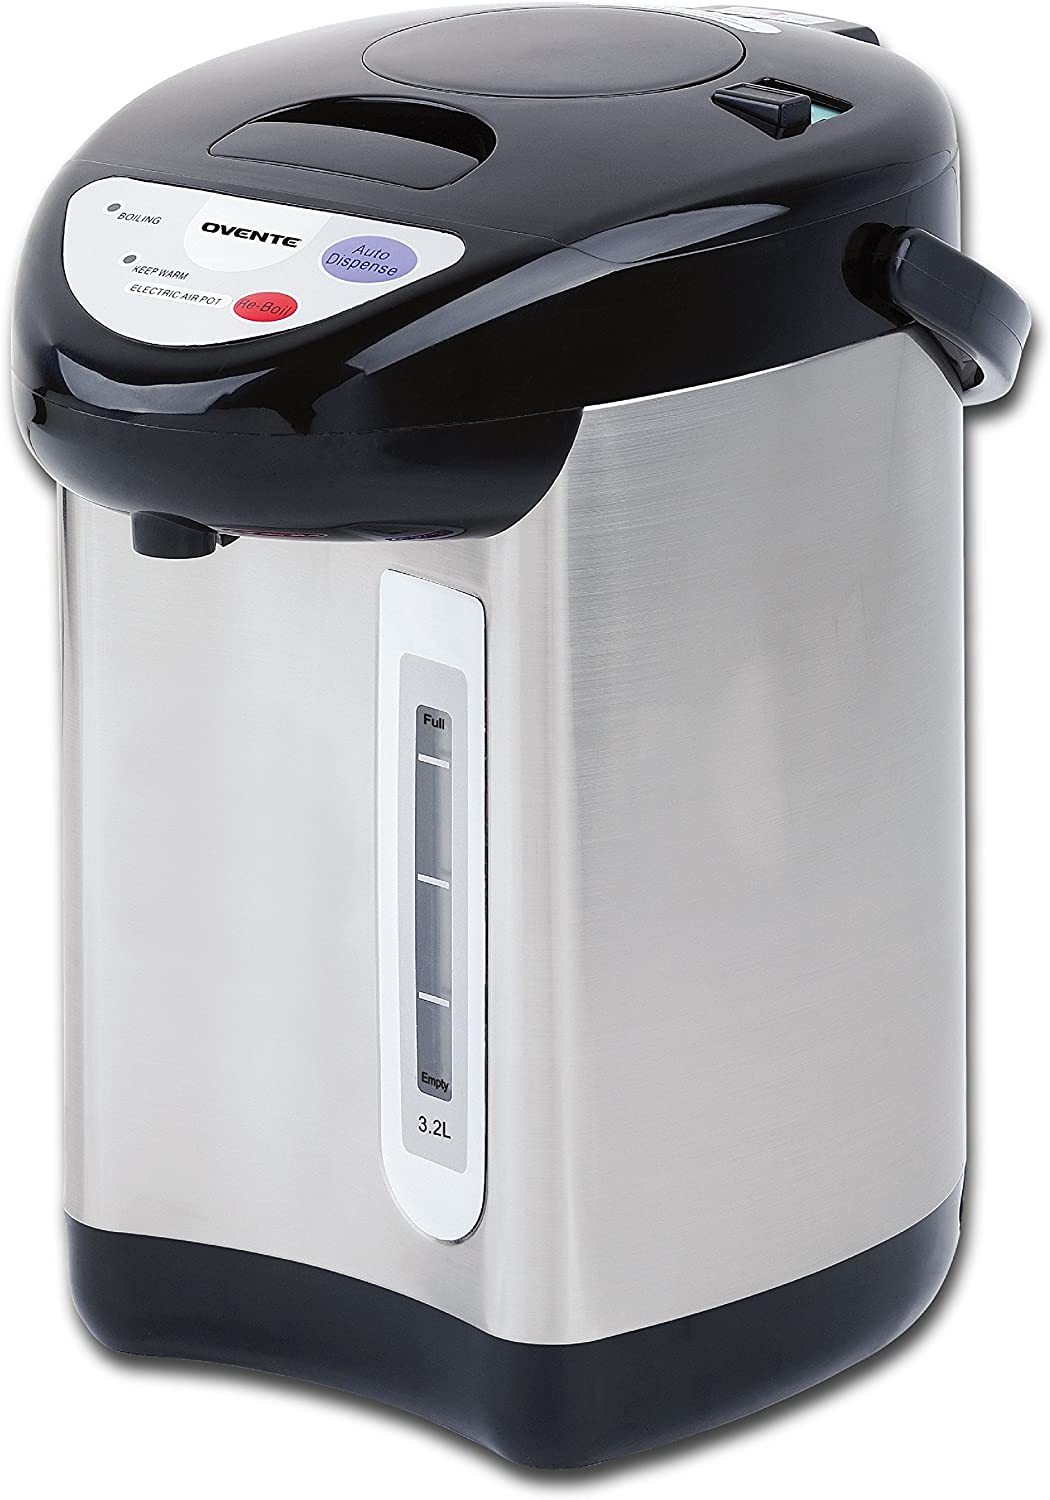 Ovente WA32S 3.2 Liter Insulated Water Dispenser with Boiler and Keep Warm Function,Black Stainless Steel